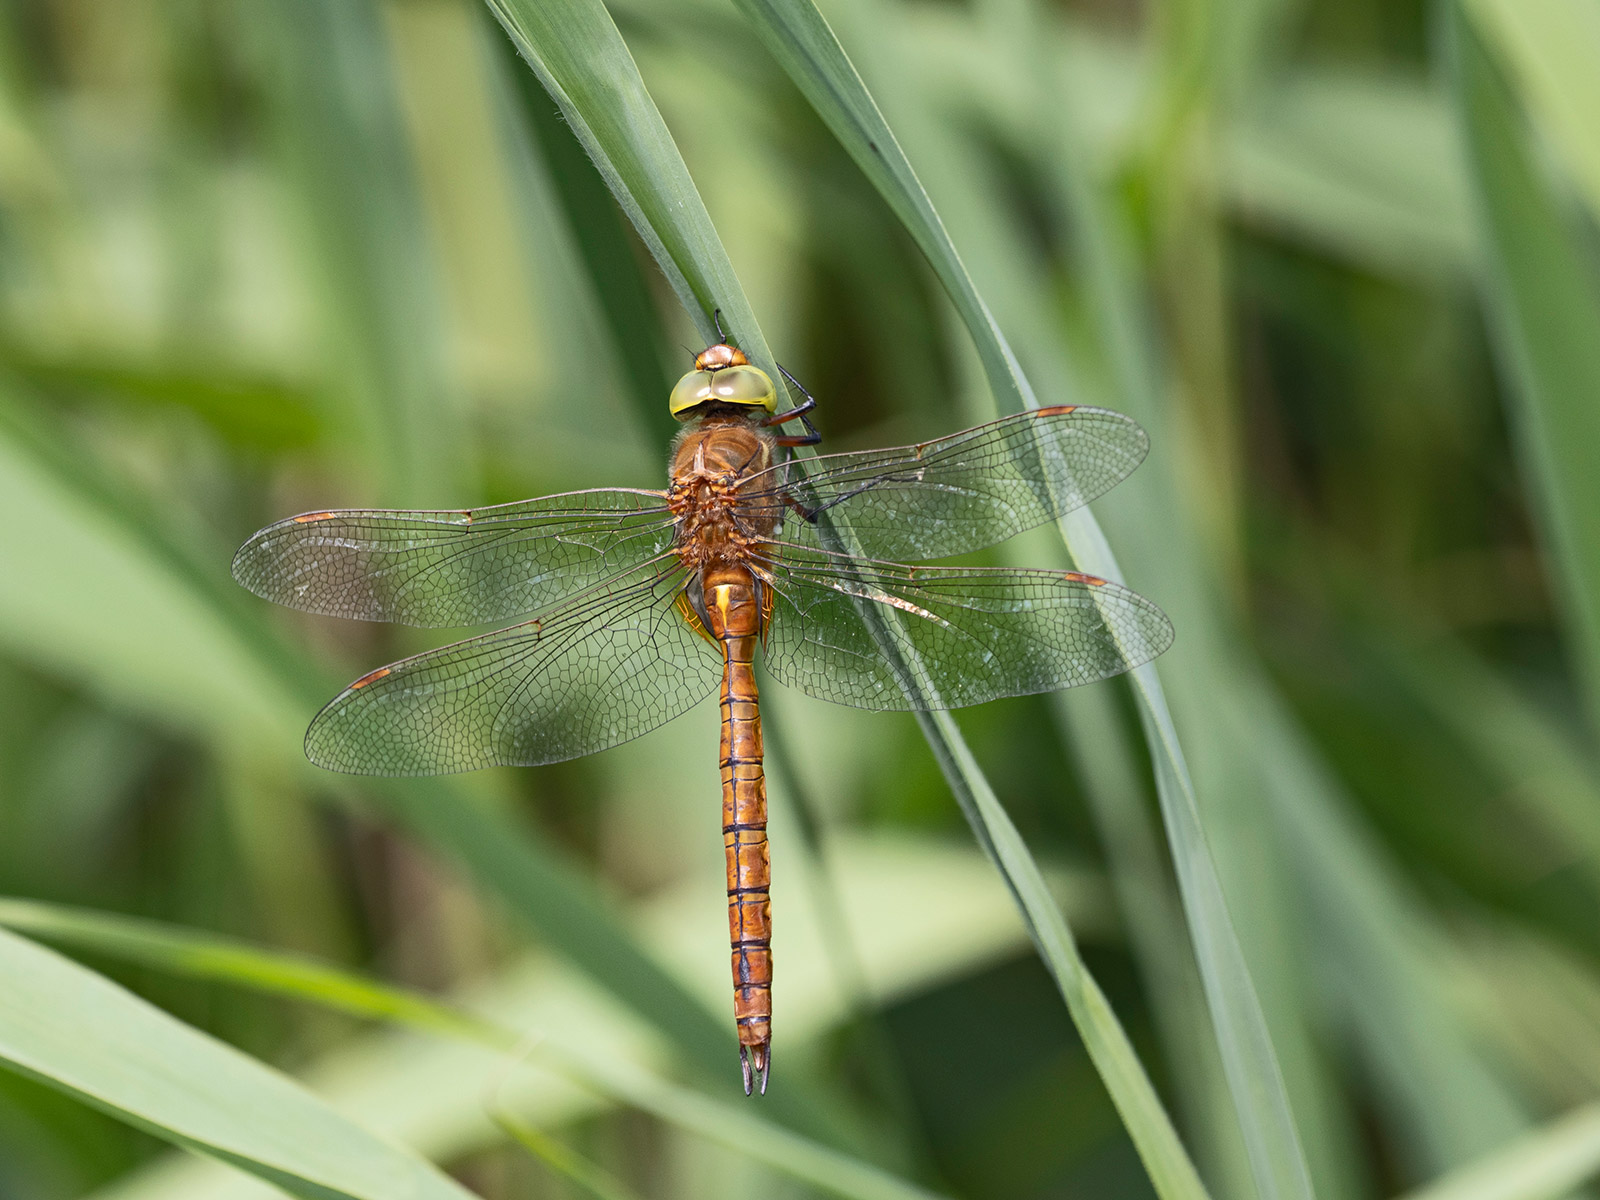 Norfolk Hawker Dragonfly, Aeshna isoceles. David Tipling With Olympus 100-400mm lens